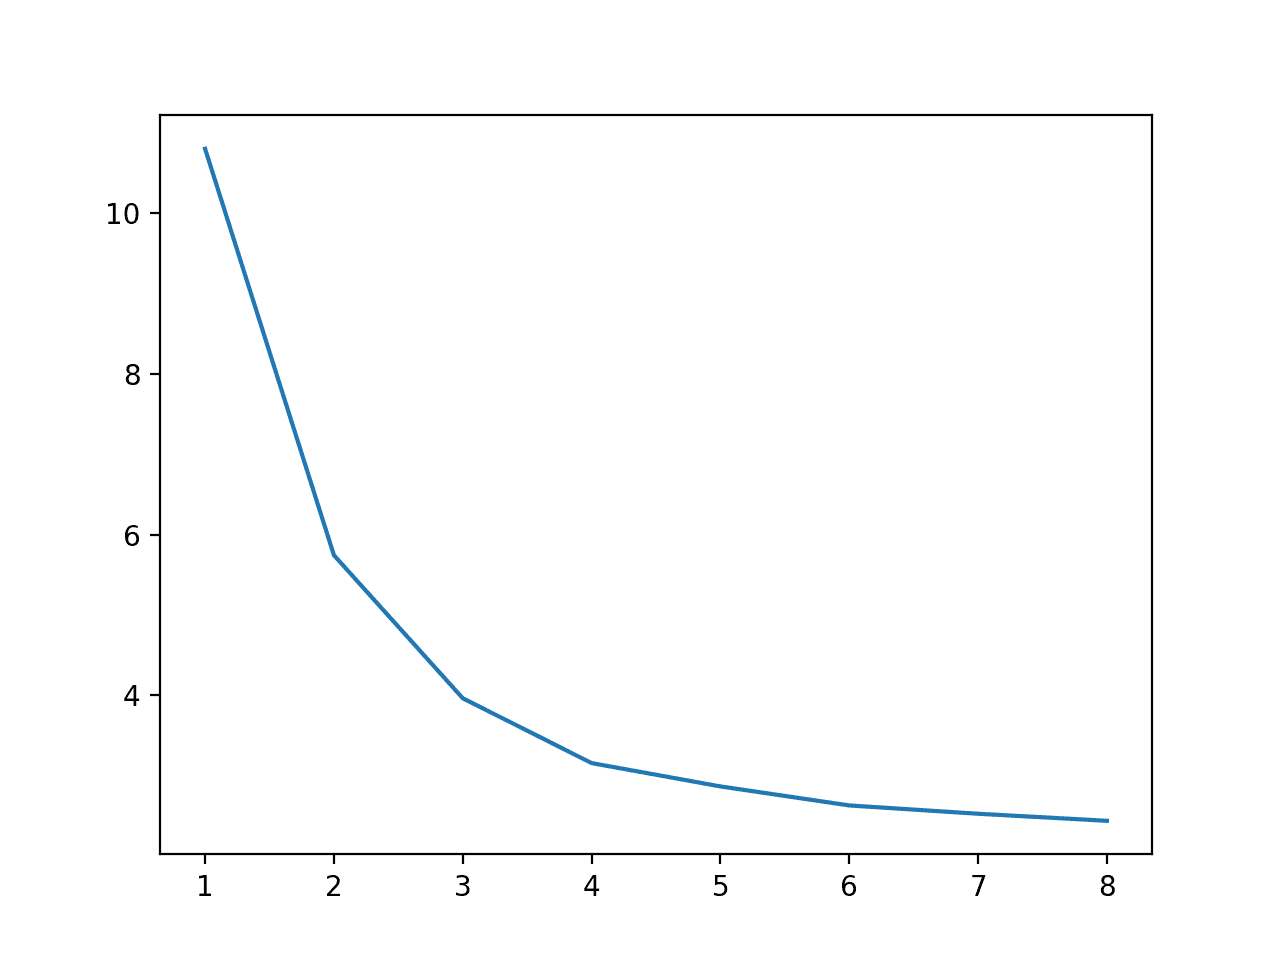 Line Plot of Number of Cores Used During Training vs. Execution Speed